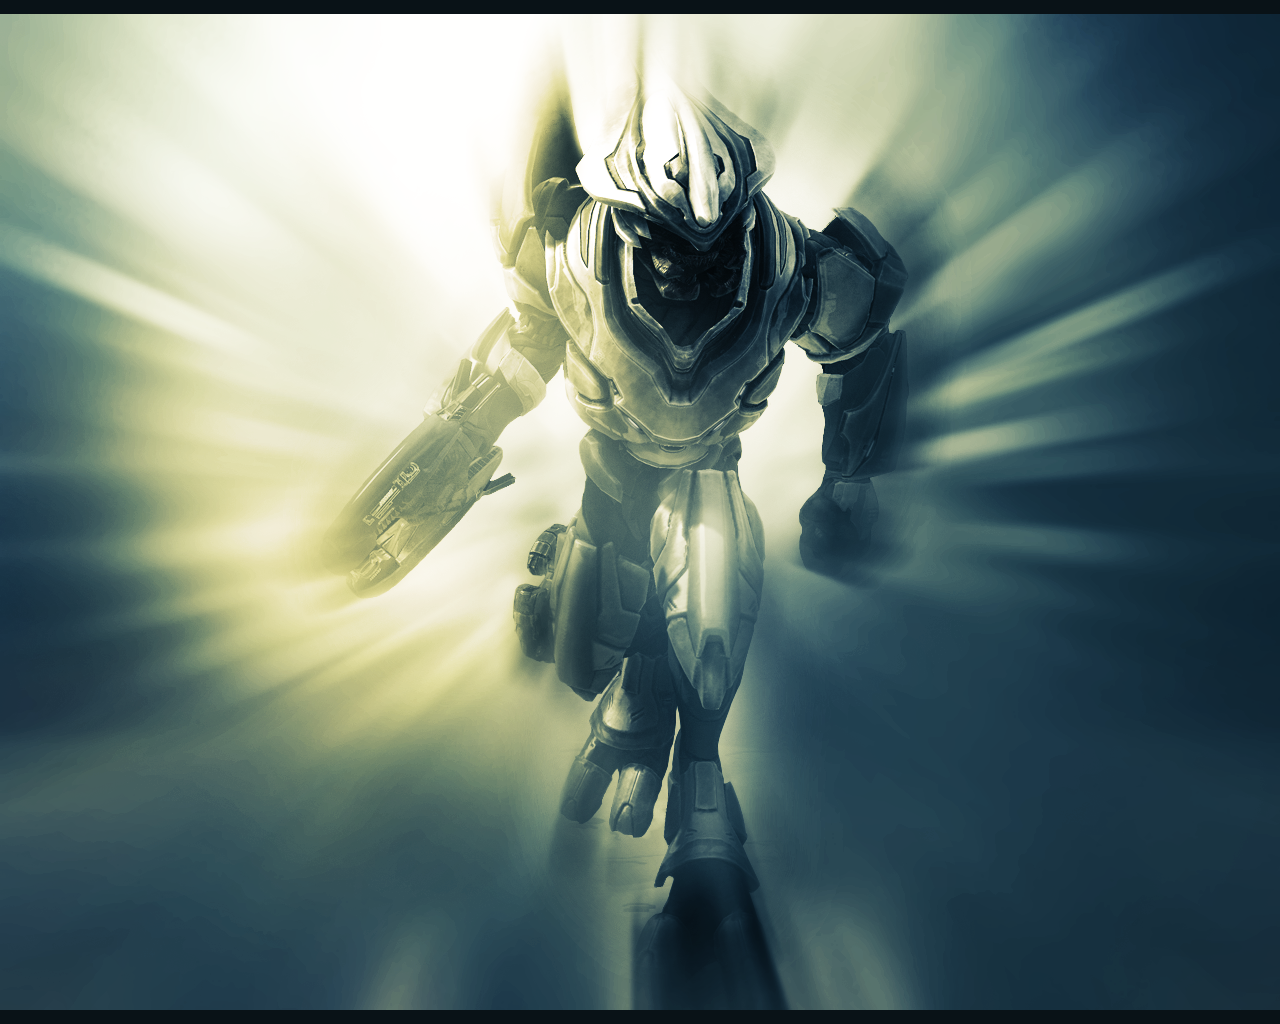 Halo wallpaper Halo wallpapers 1280x1024